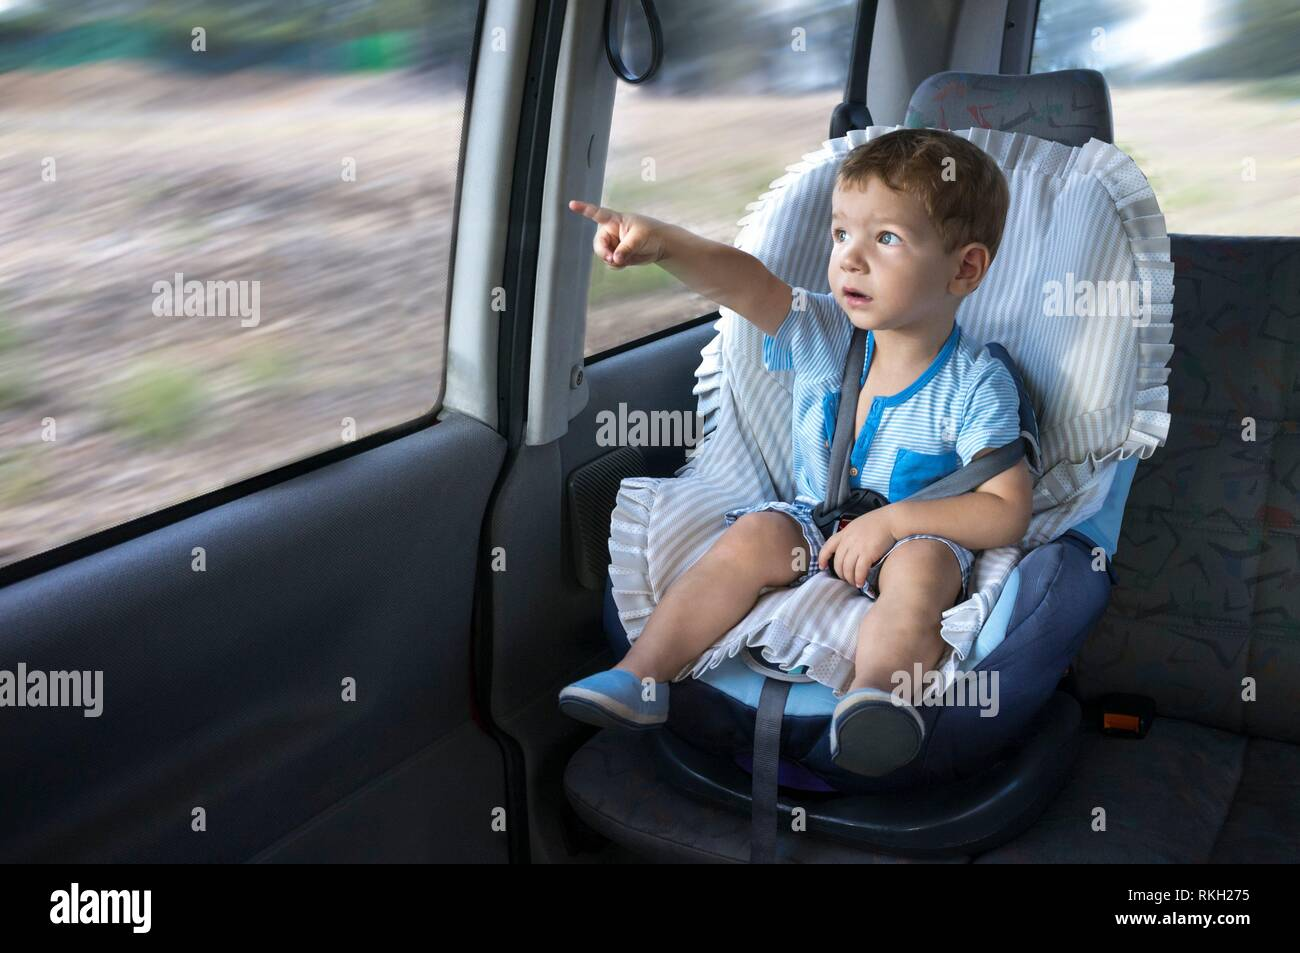 Cute little boy observing the countryside from his car safety seat. He is pointing something. - Stock Image